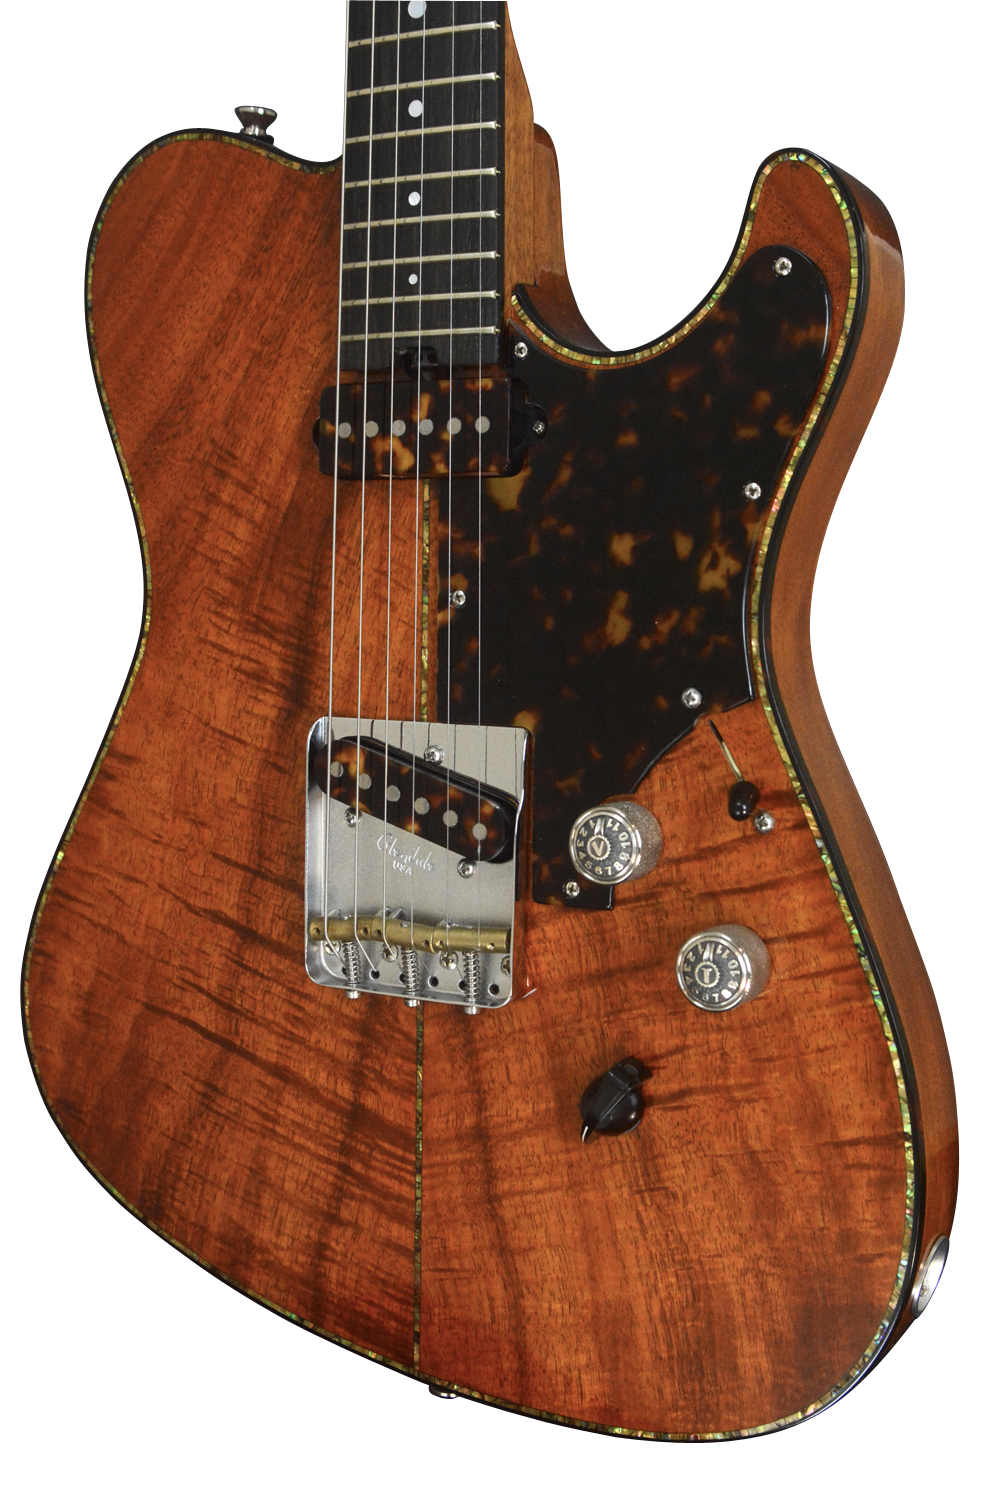 SOLD 2017 T Deluxe Master Series Hawaiian Koa Top, Abalone Trim, #948